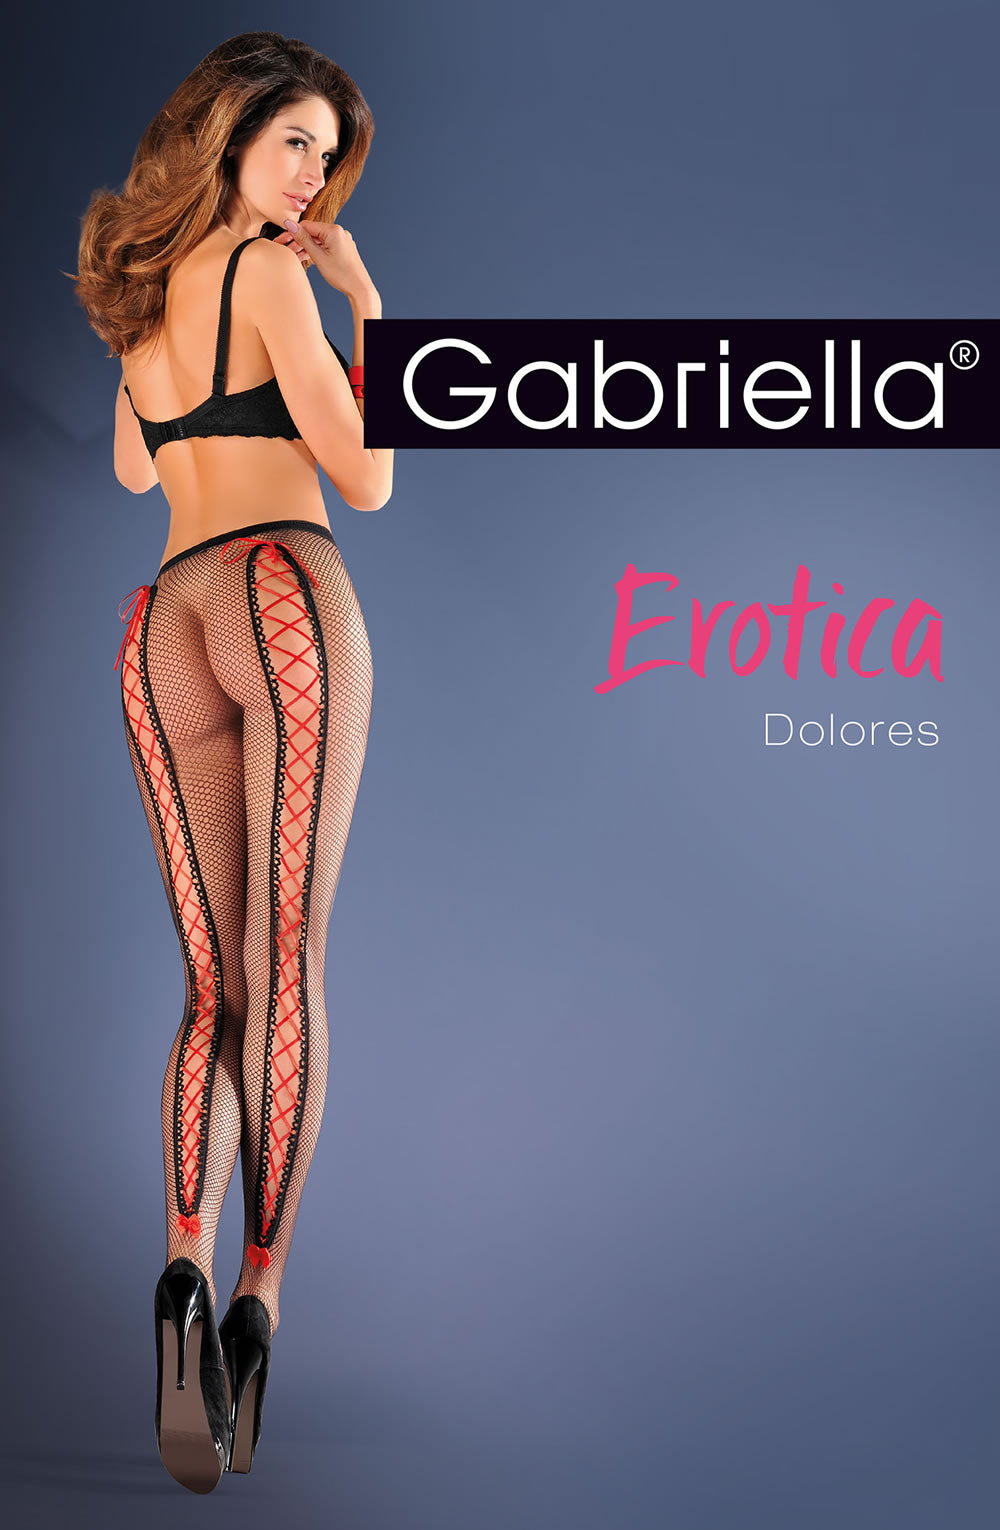 Gabriella Gabriella Erotic 639 Dolores Nero (Black  - So Luxe